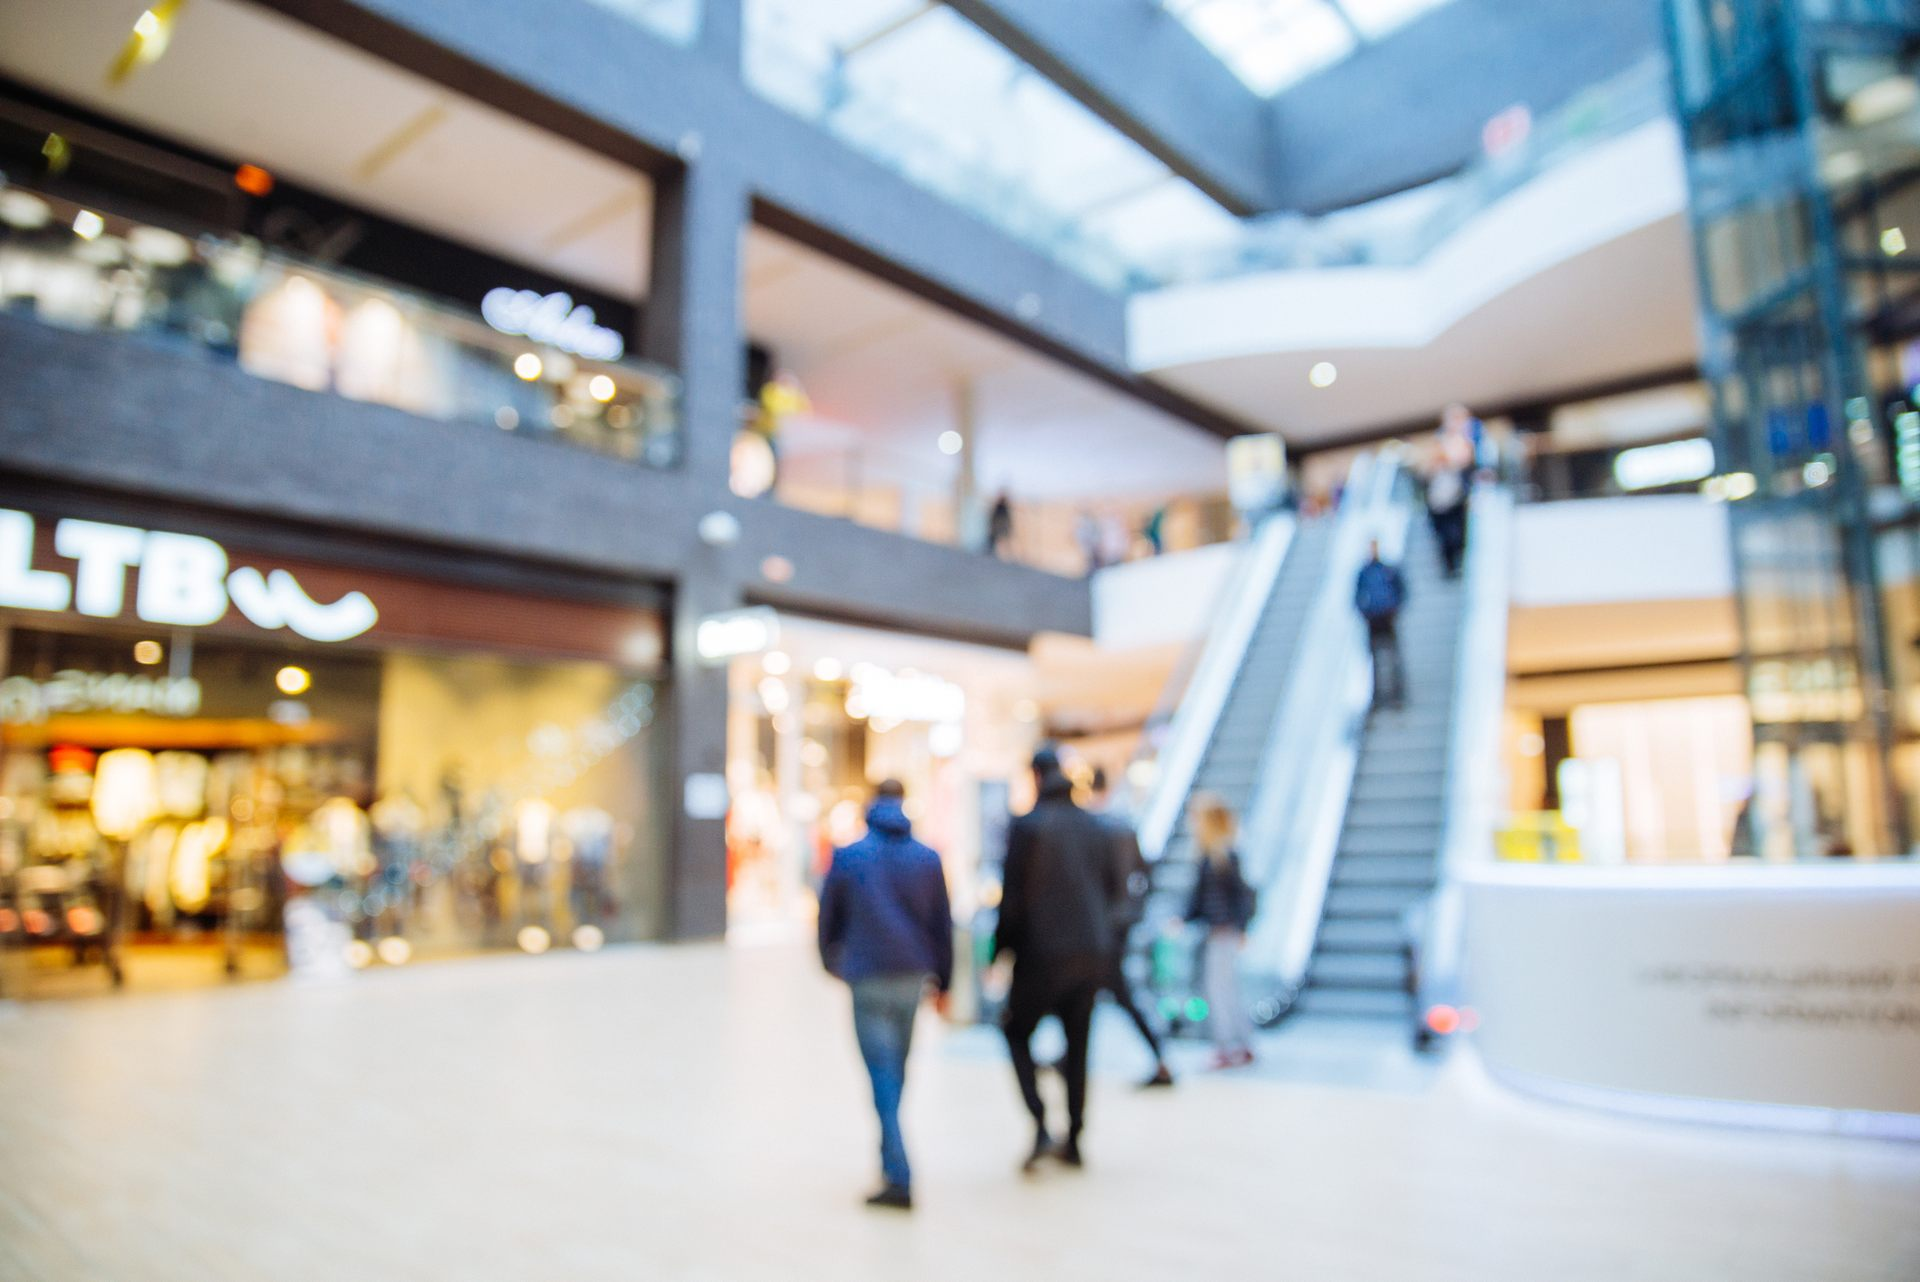 Pioneering the malls of the future through digital solutions and data analytics